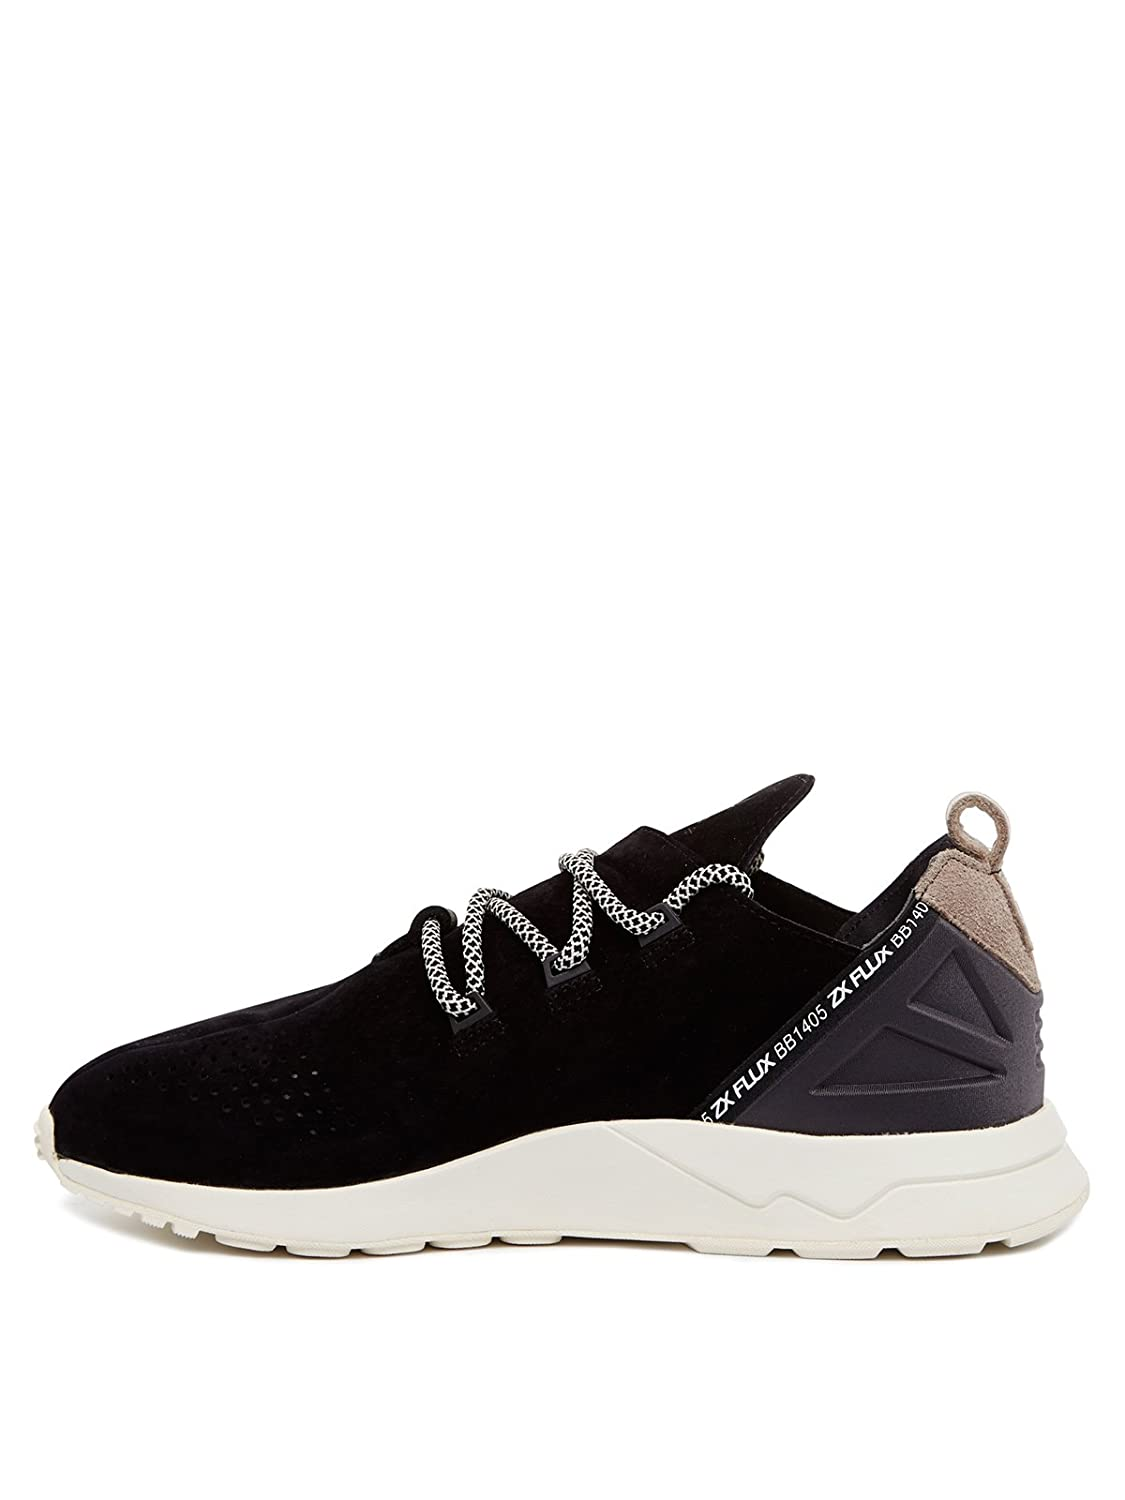 Adidas ORIGINALS ZX Flux ADV X, Core BlackCore BlackFTWR